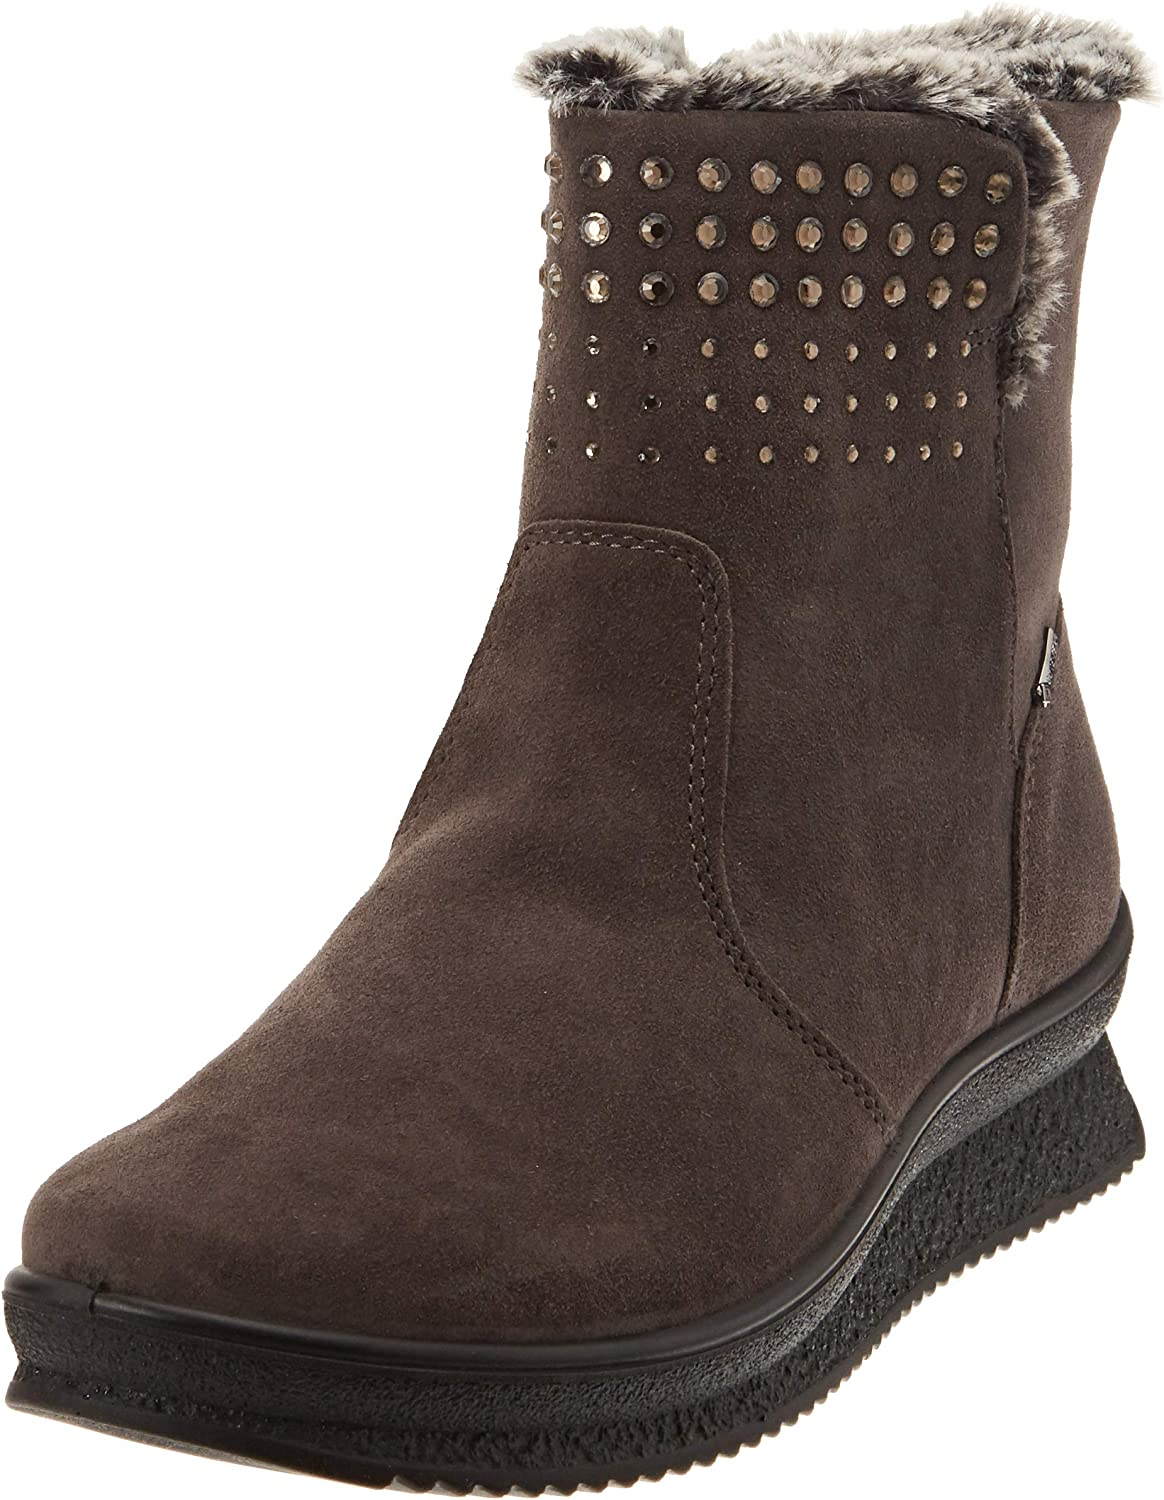 Chicago Mall Latest item IGICo Women's Dkngt Ankle Boots 21670